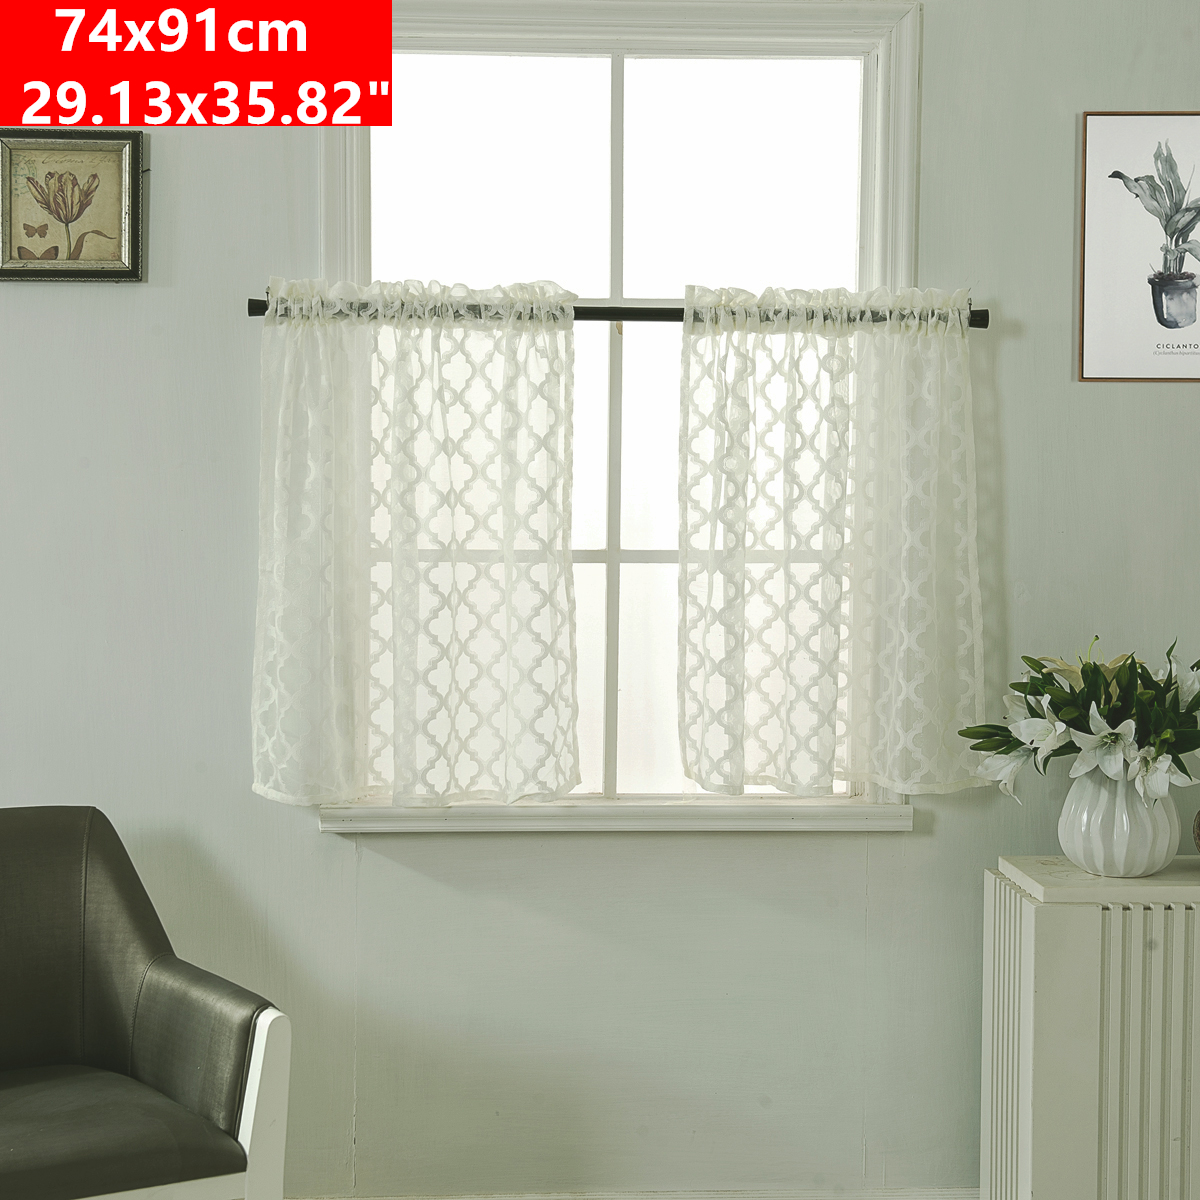 Details about Sheer Kitchen Tiers Curtains Rhombus Jacquard Short Half  Window Drapes Valance